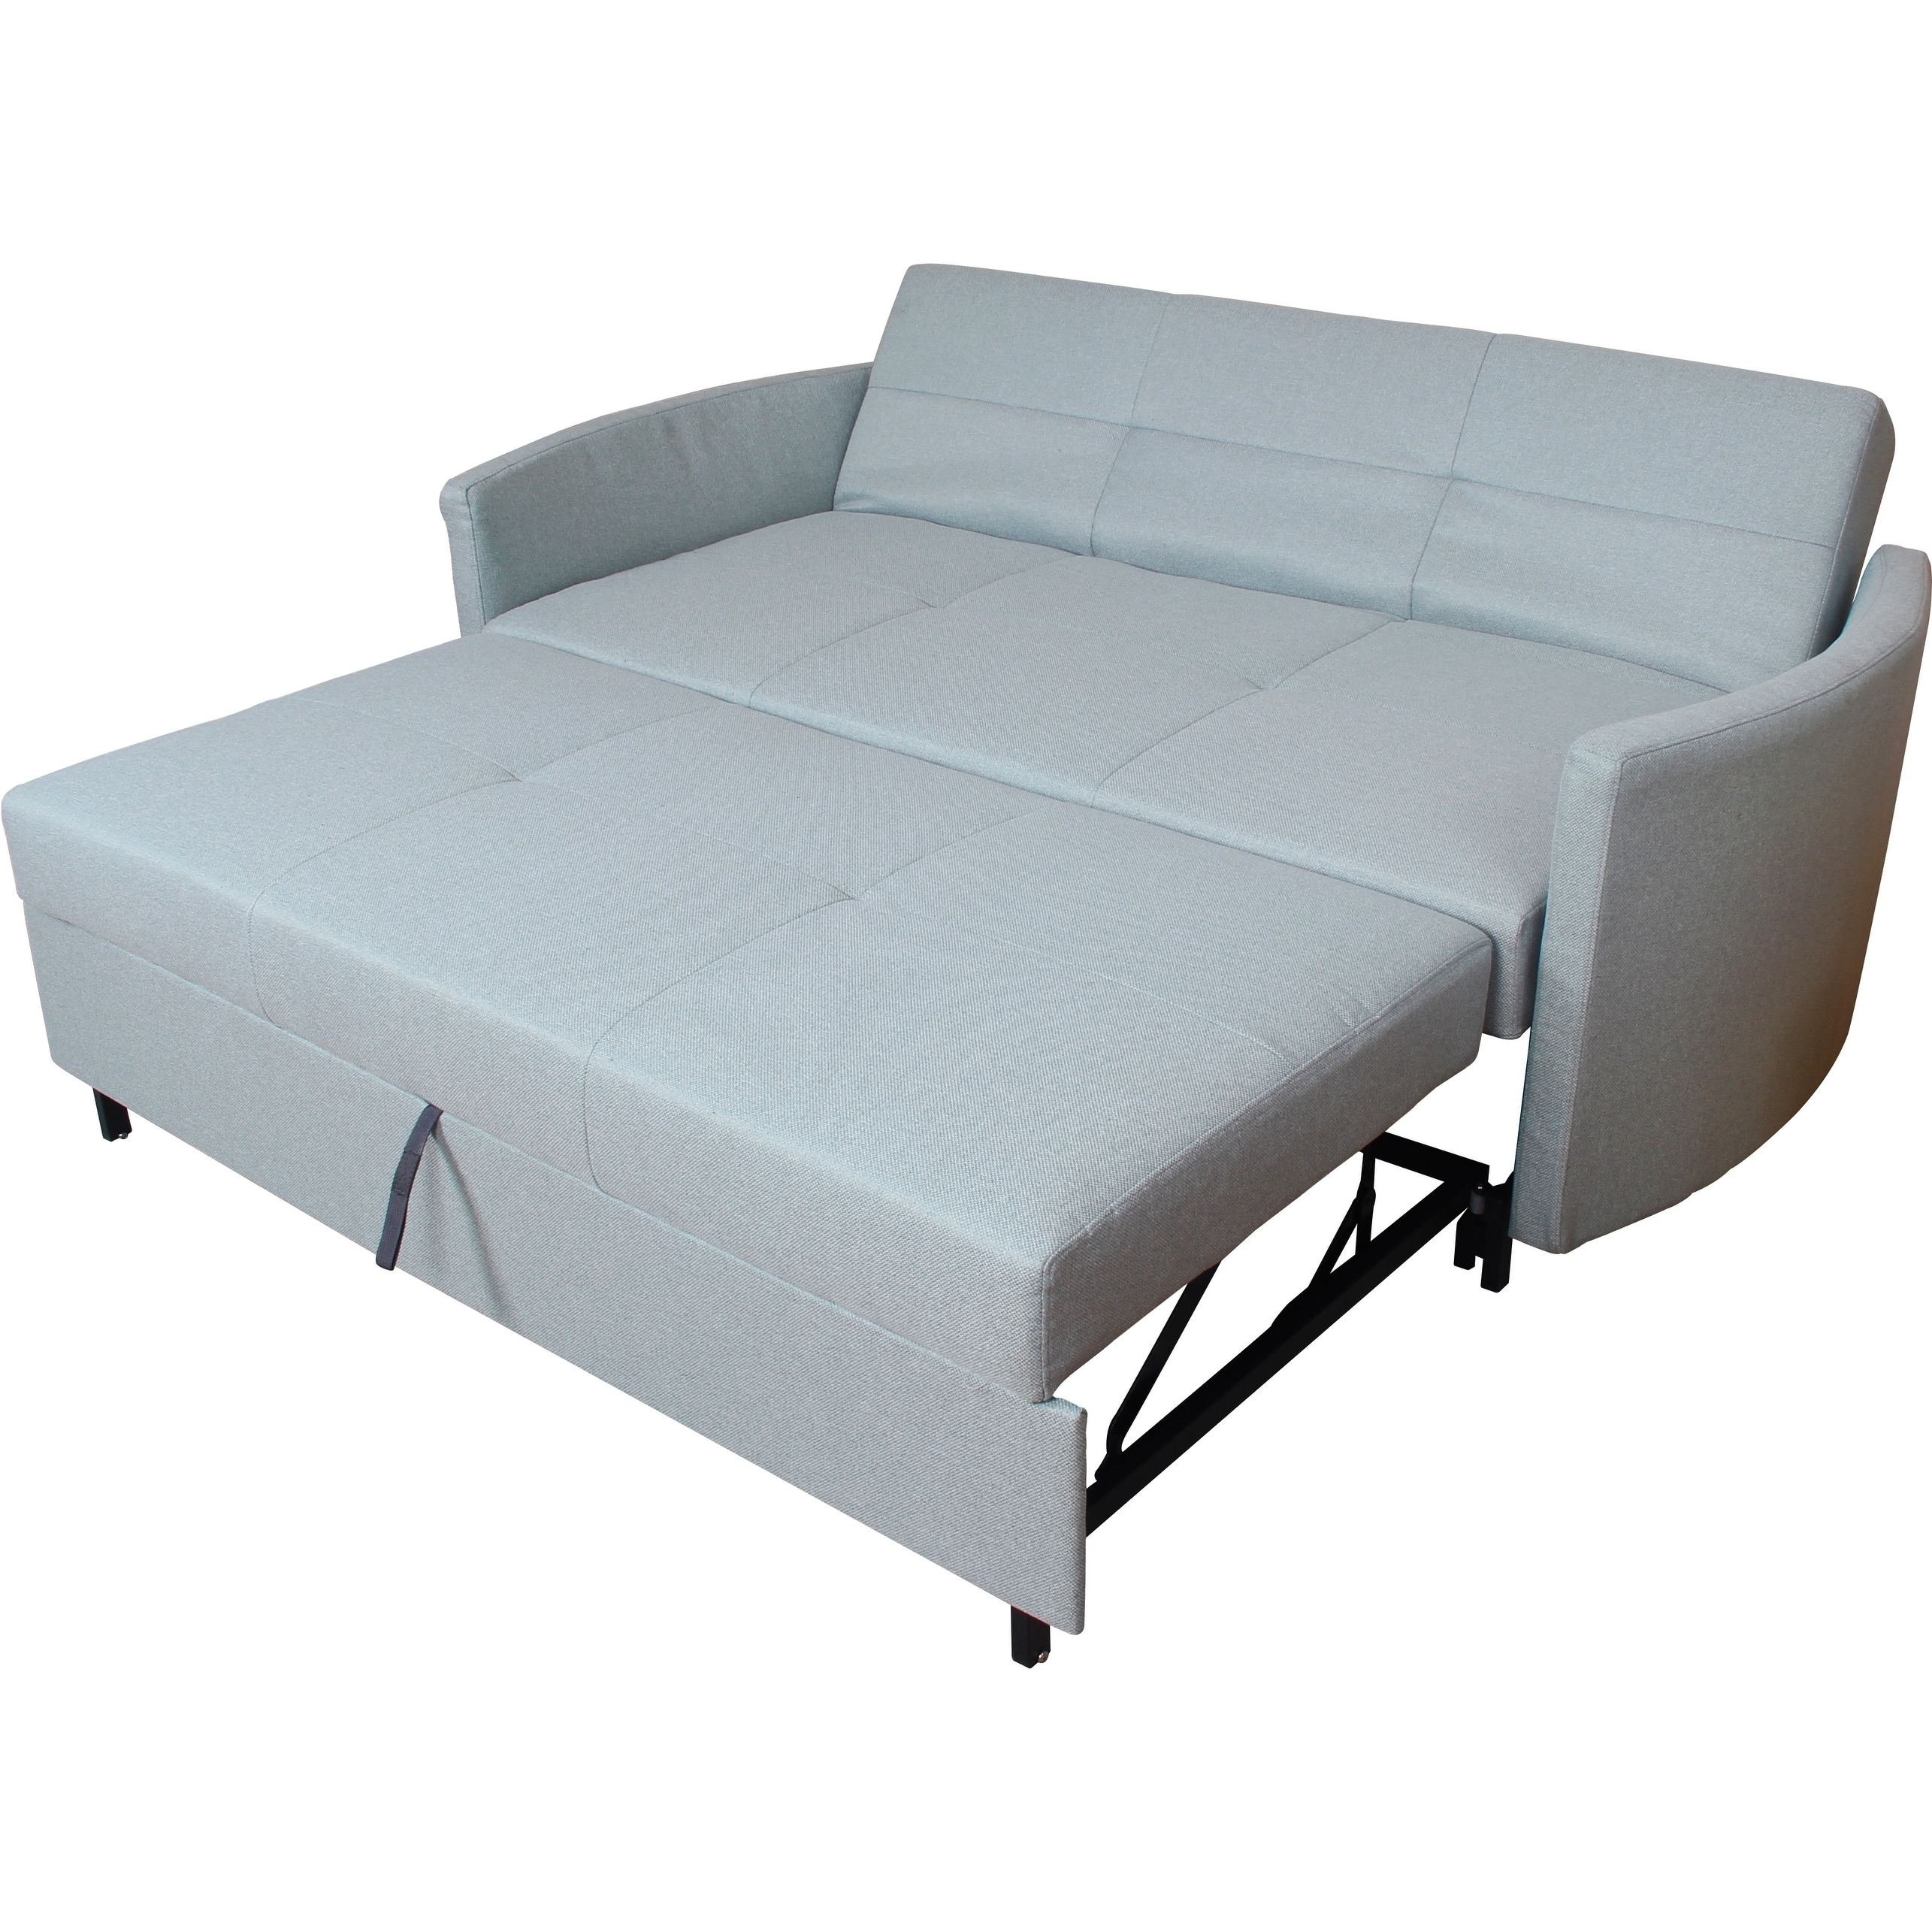 Sofa Chair Pull Out Bed | Convertible Loveseat Bed Convertible Chair ...